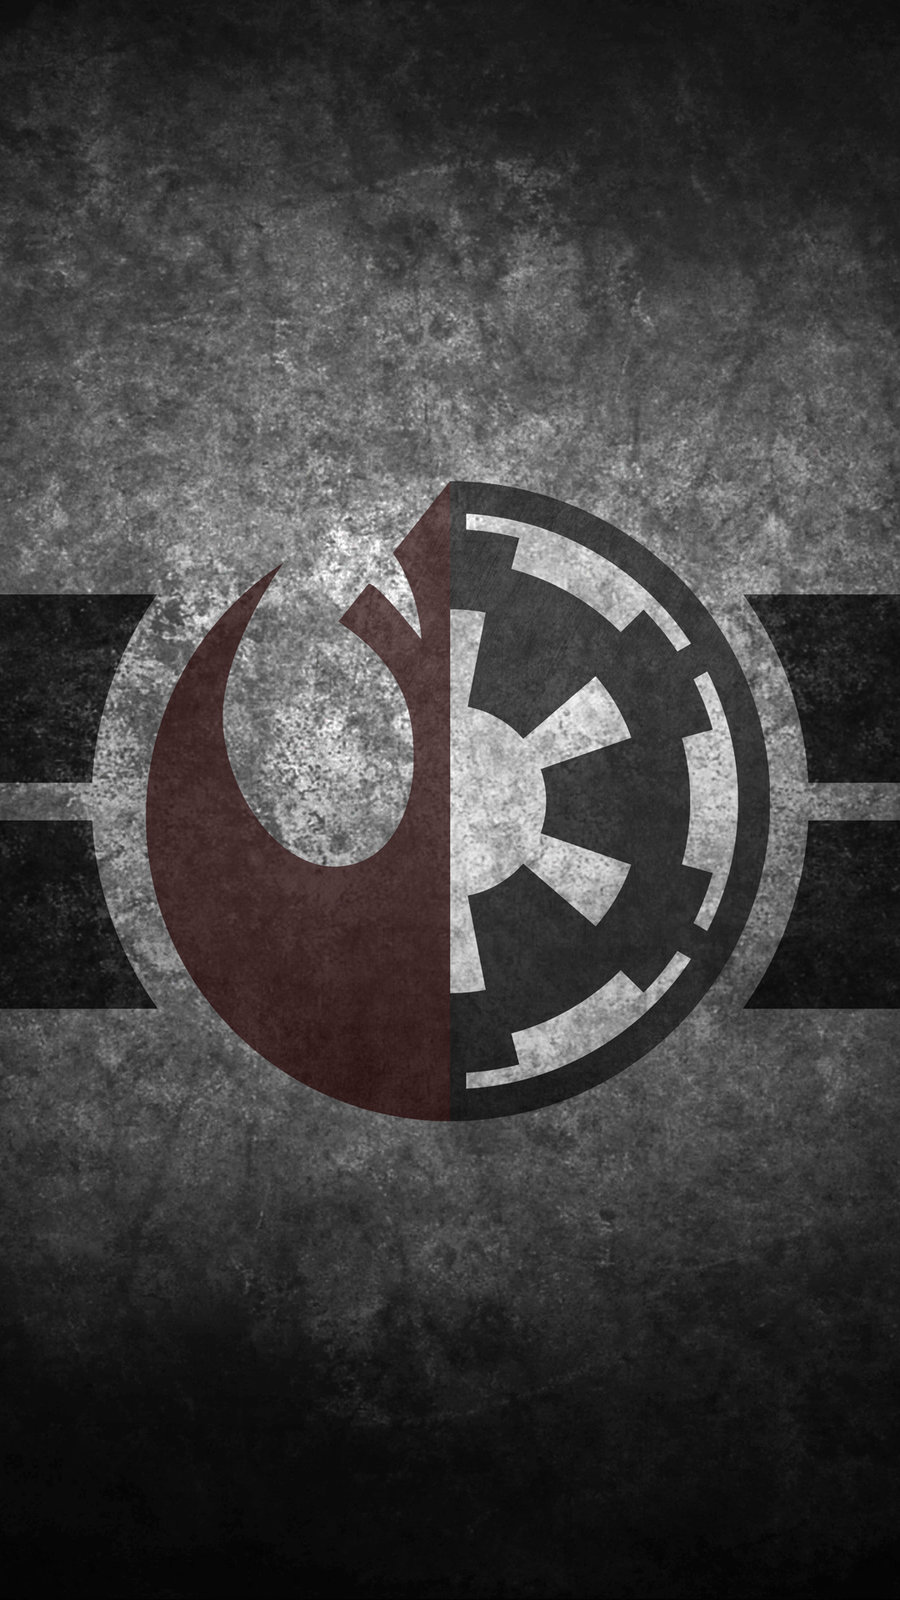 Star Wars Mobile Wallpaper - WallpaperSafari